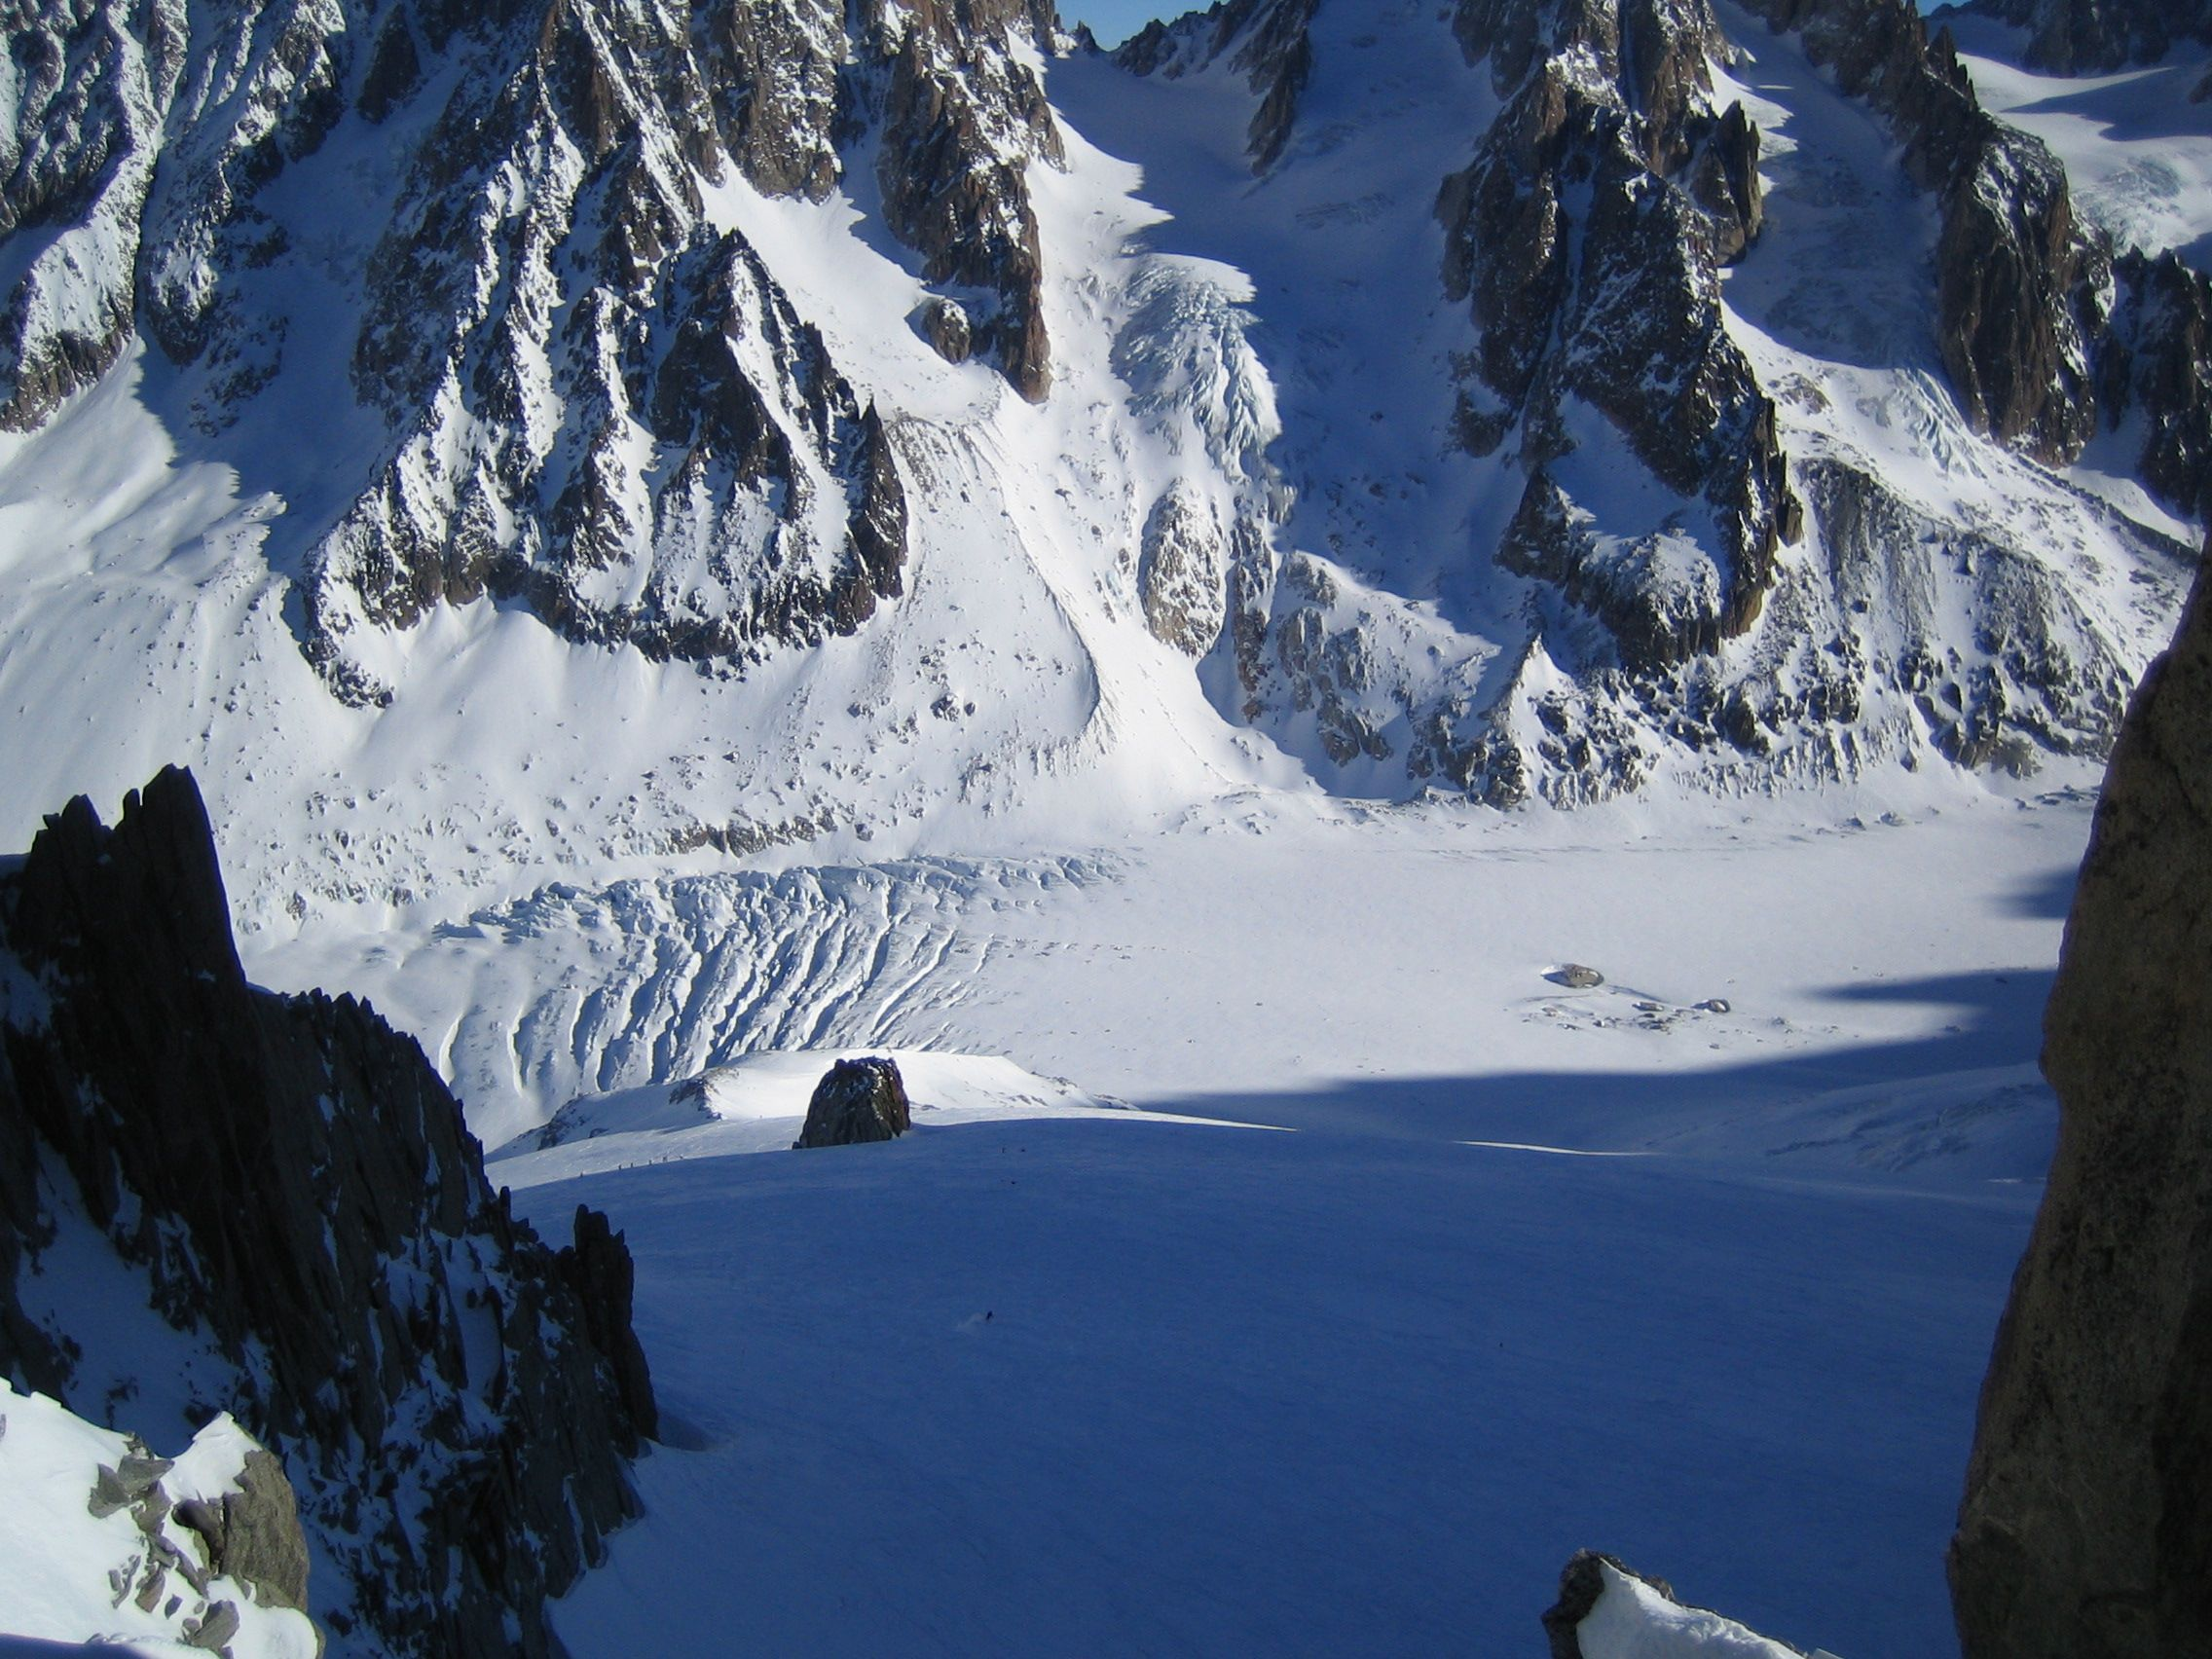 The Top Of The Grand Montets Ski Run At 3295m Chamonix Montagnes Vallee